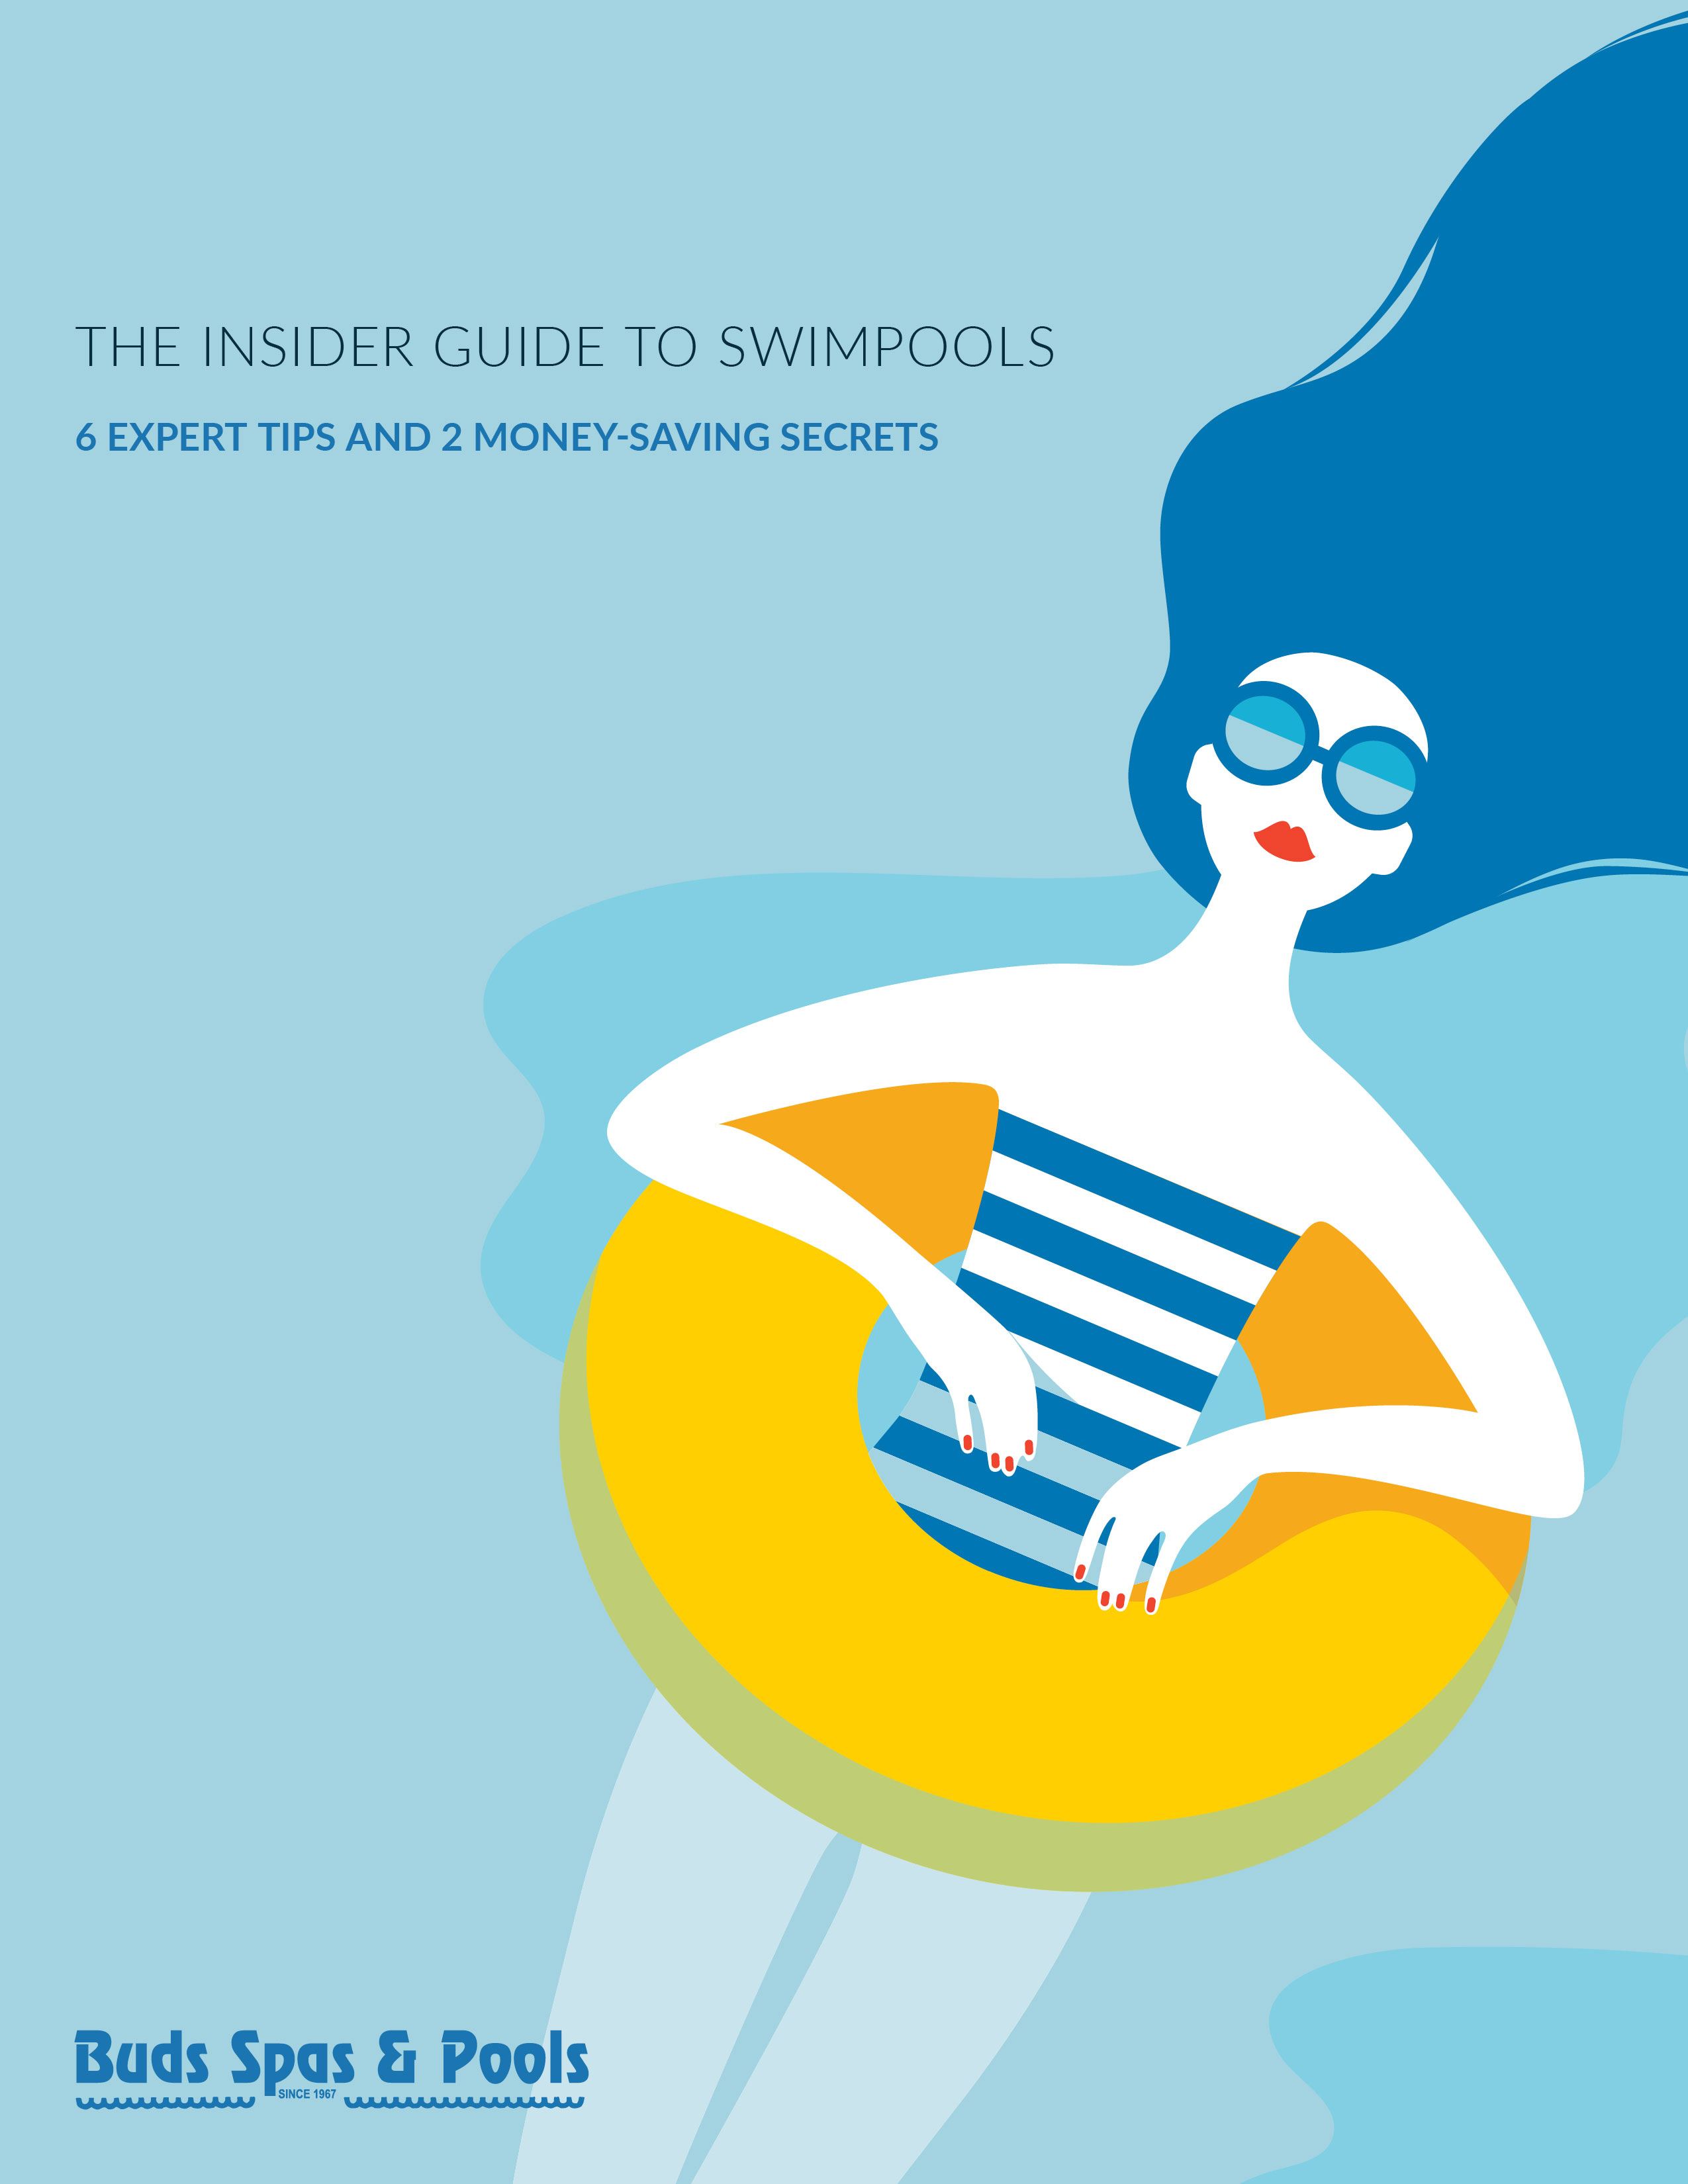 The insider guide to swimpools